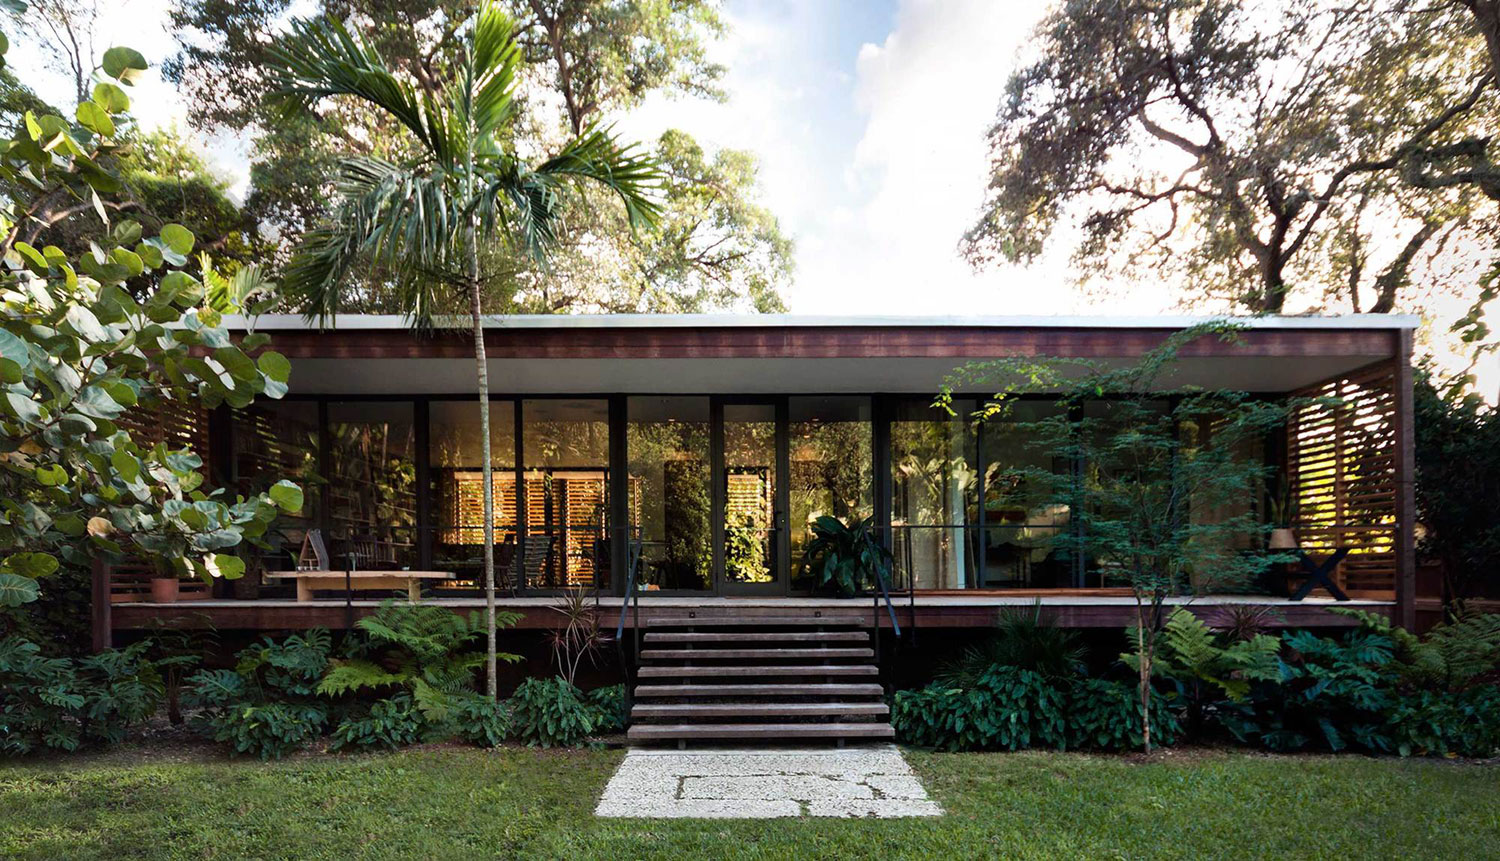 Wooden Tropical Brillhart House Located in Miami by Brillhart Architecture-11